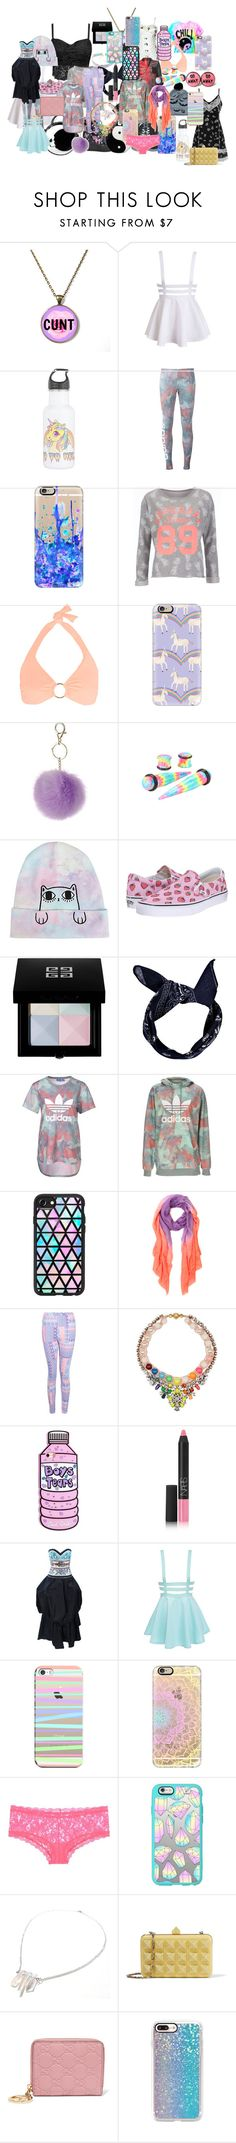 """""""Untitled #6"""" by yougothacked-1 ❤ liked on Polyvore featuring Disturbia, Betsey Johnson, adidas, Casetify, Superdry, Melissa Odabash, Dorothy Perkins, Vans, Givenchy and Boohoo"""